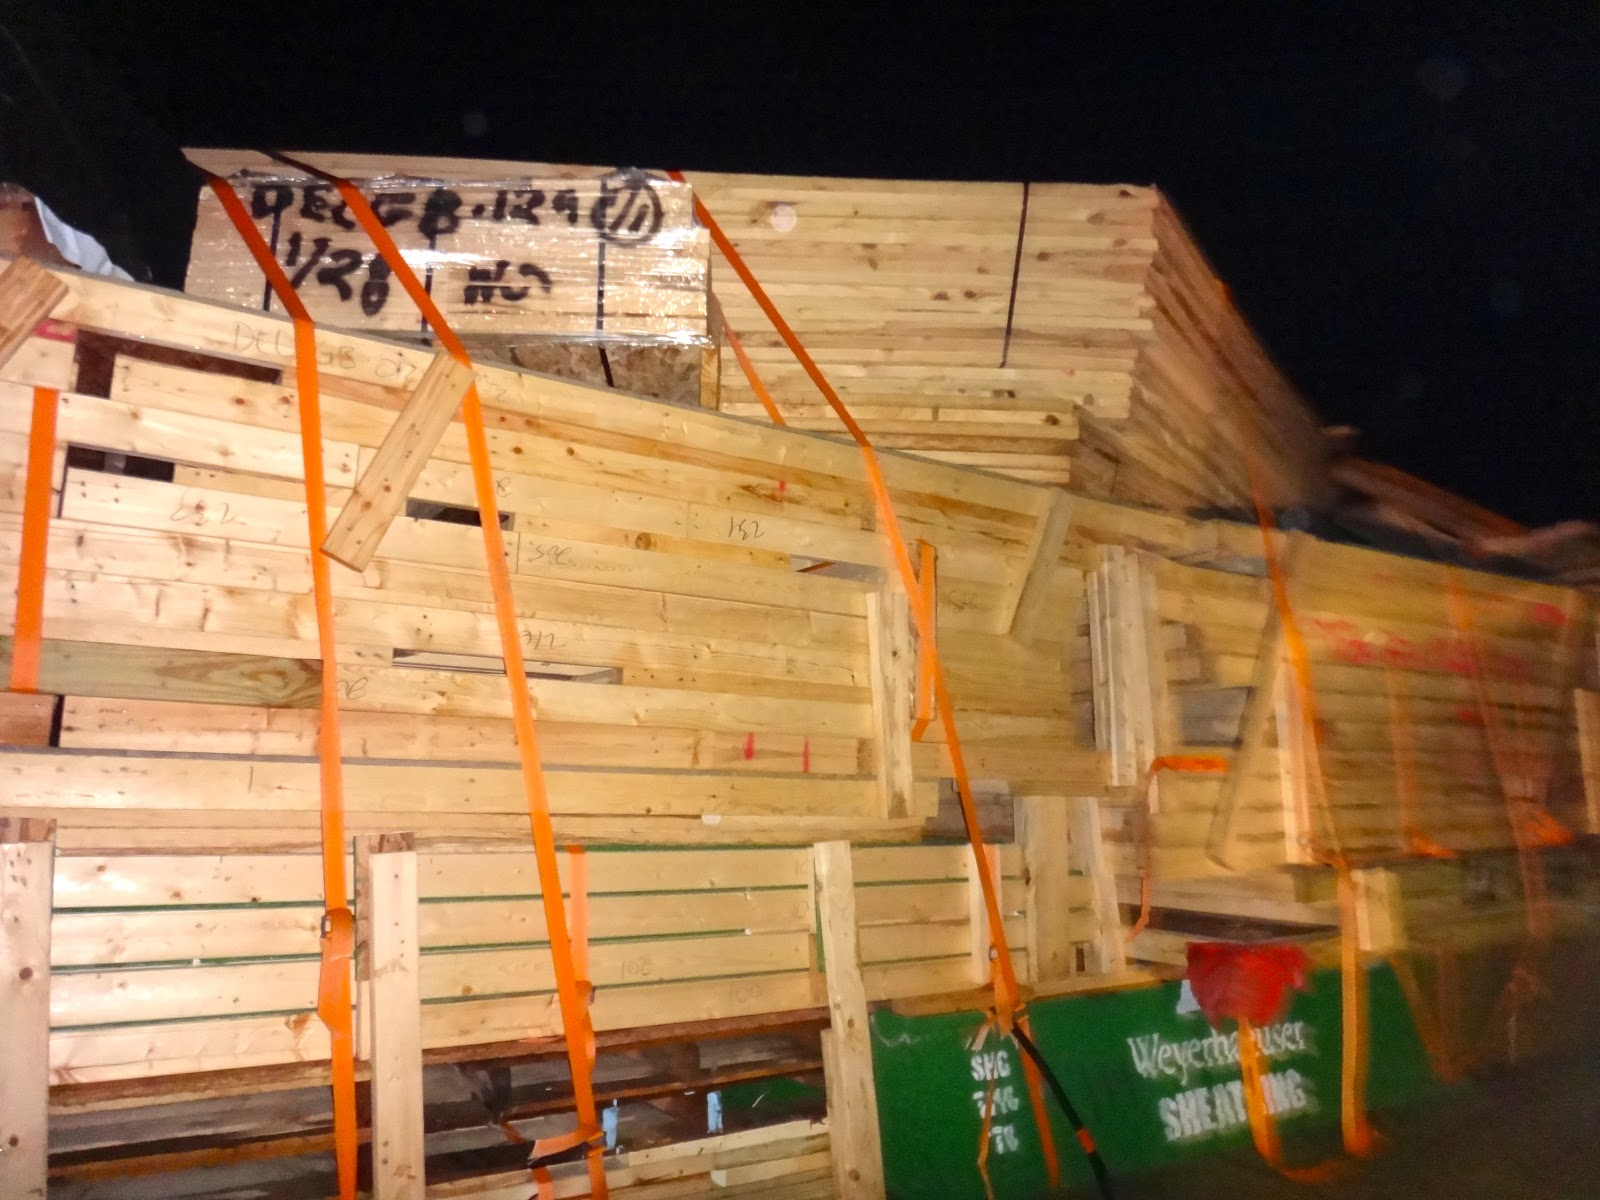 Fancy 39 in up our florence we 39 ve got lumber for 4 8 meter decking boards